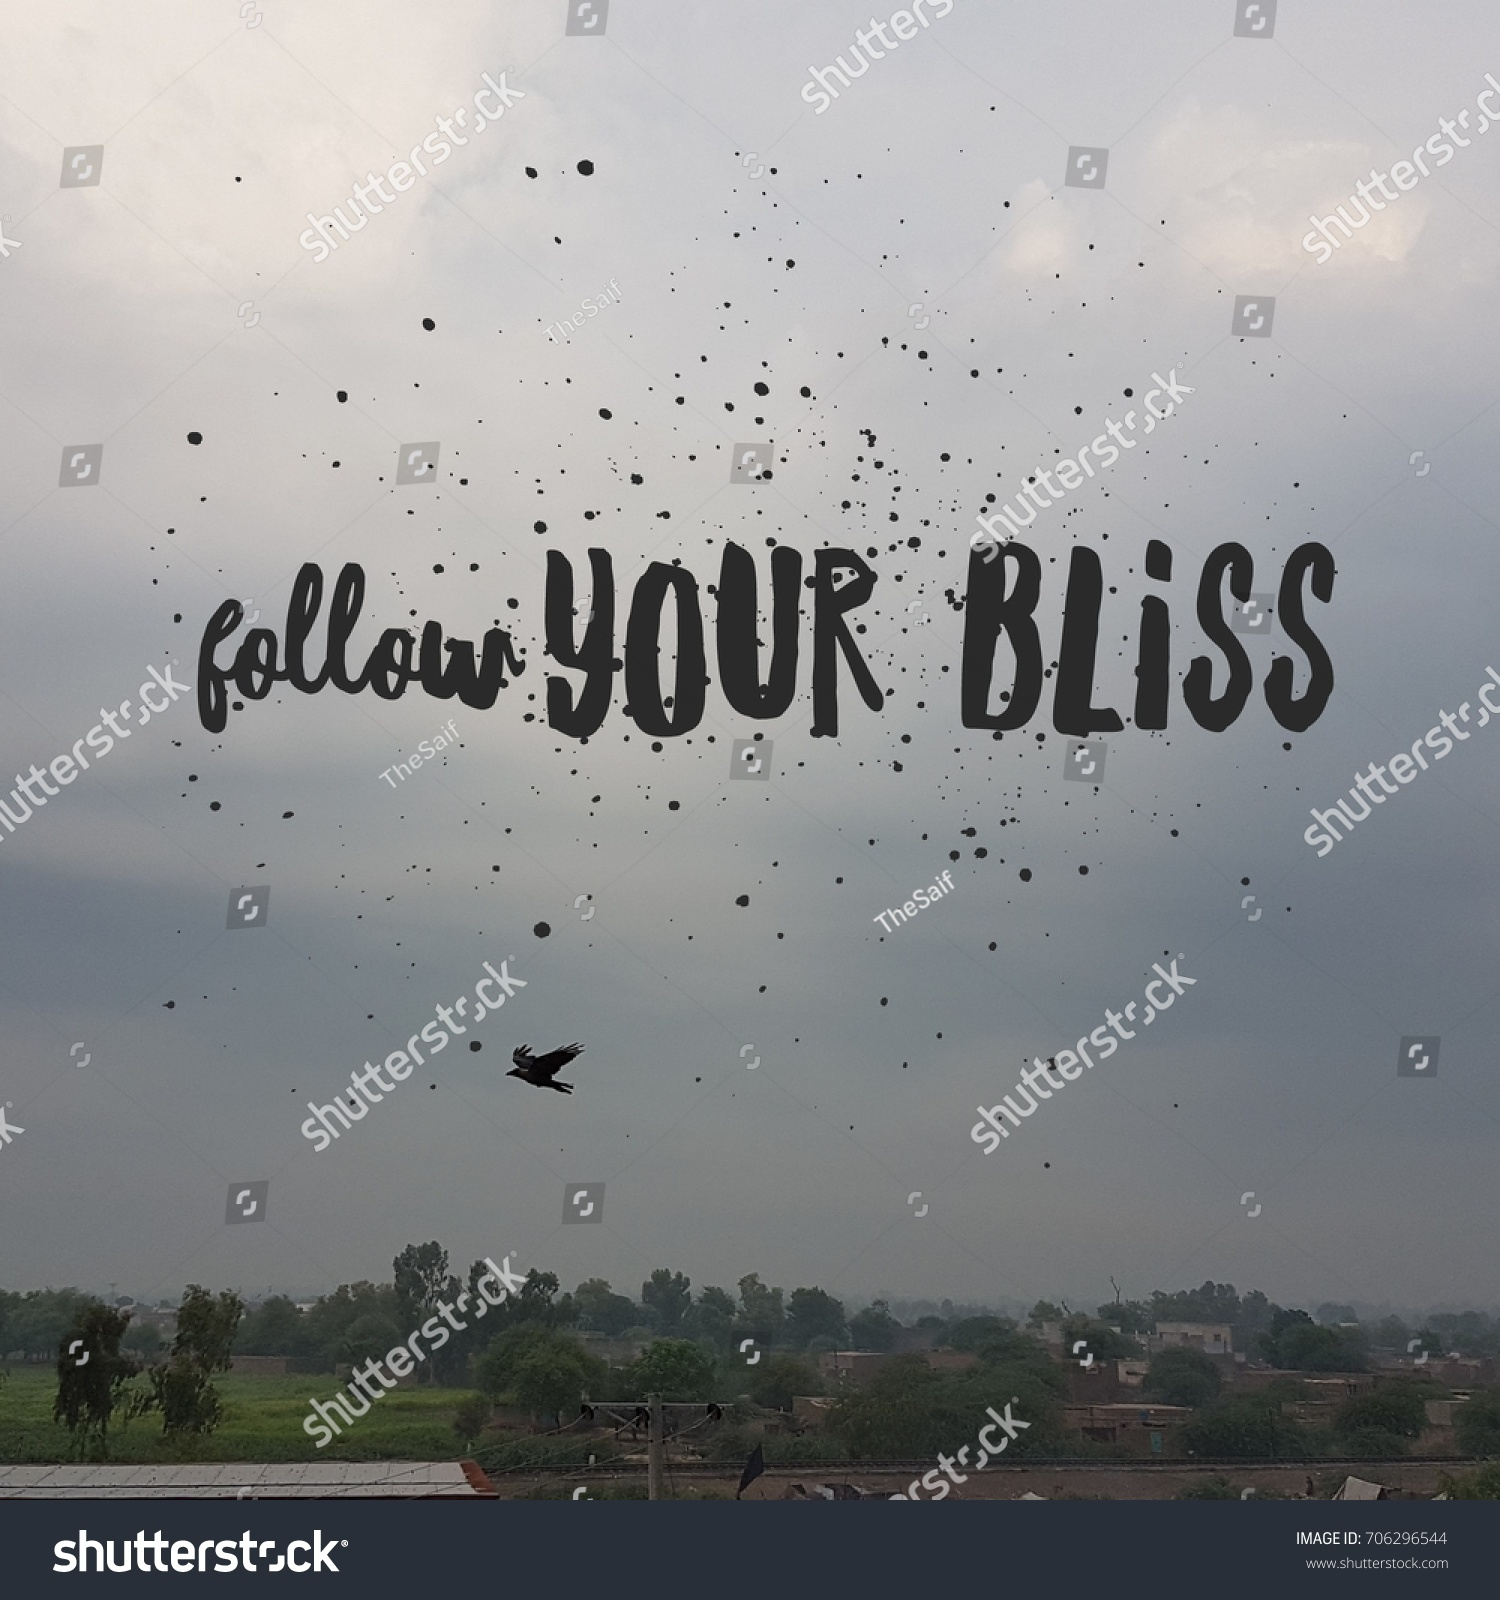 Inspirational Life Quotes And Sayings Quote Best Inspirational Motivational Quotes Sayings Stock Photo